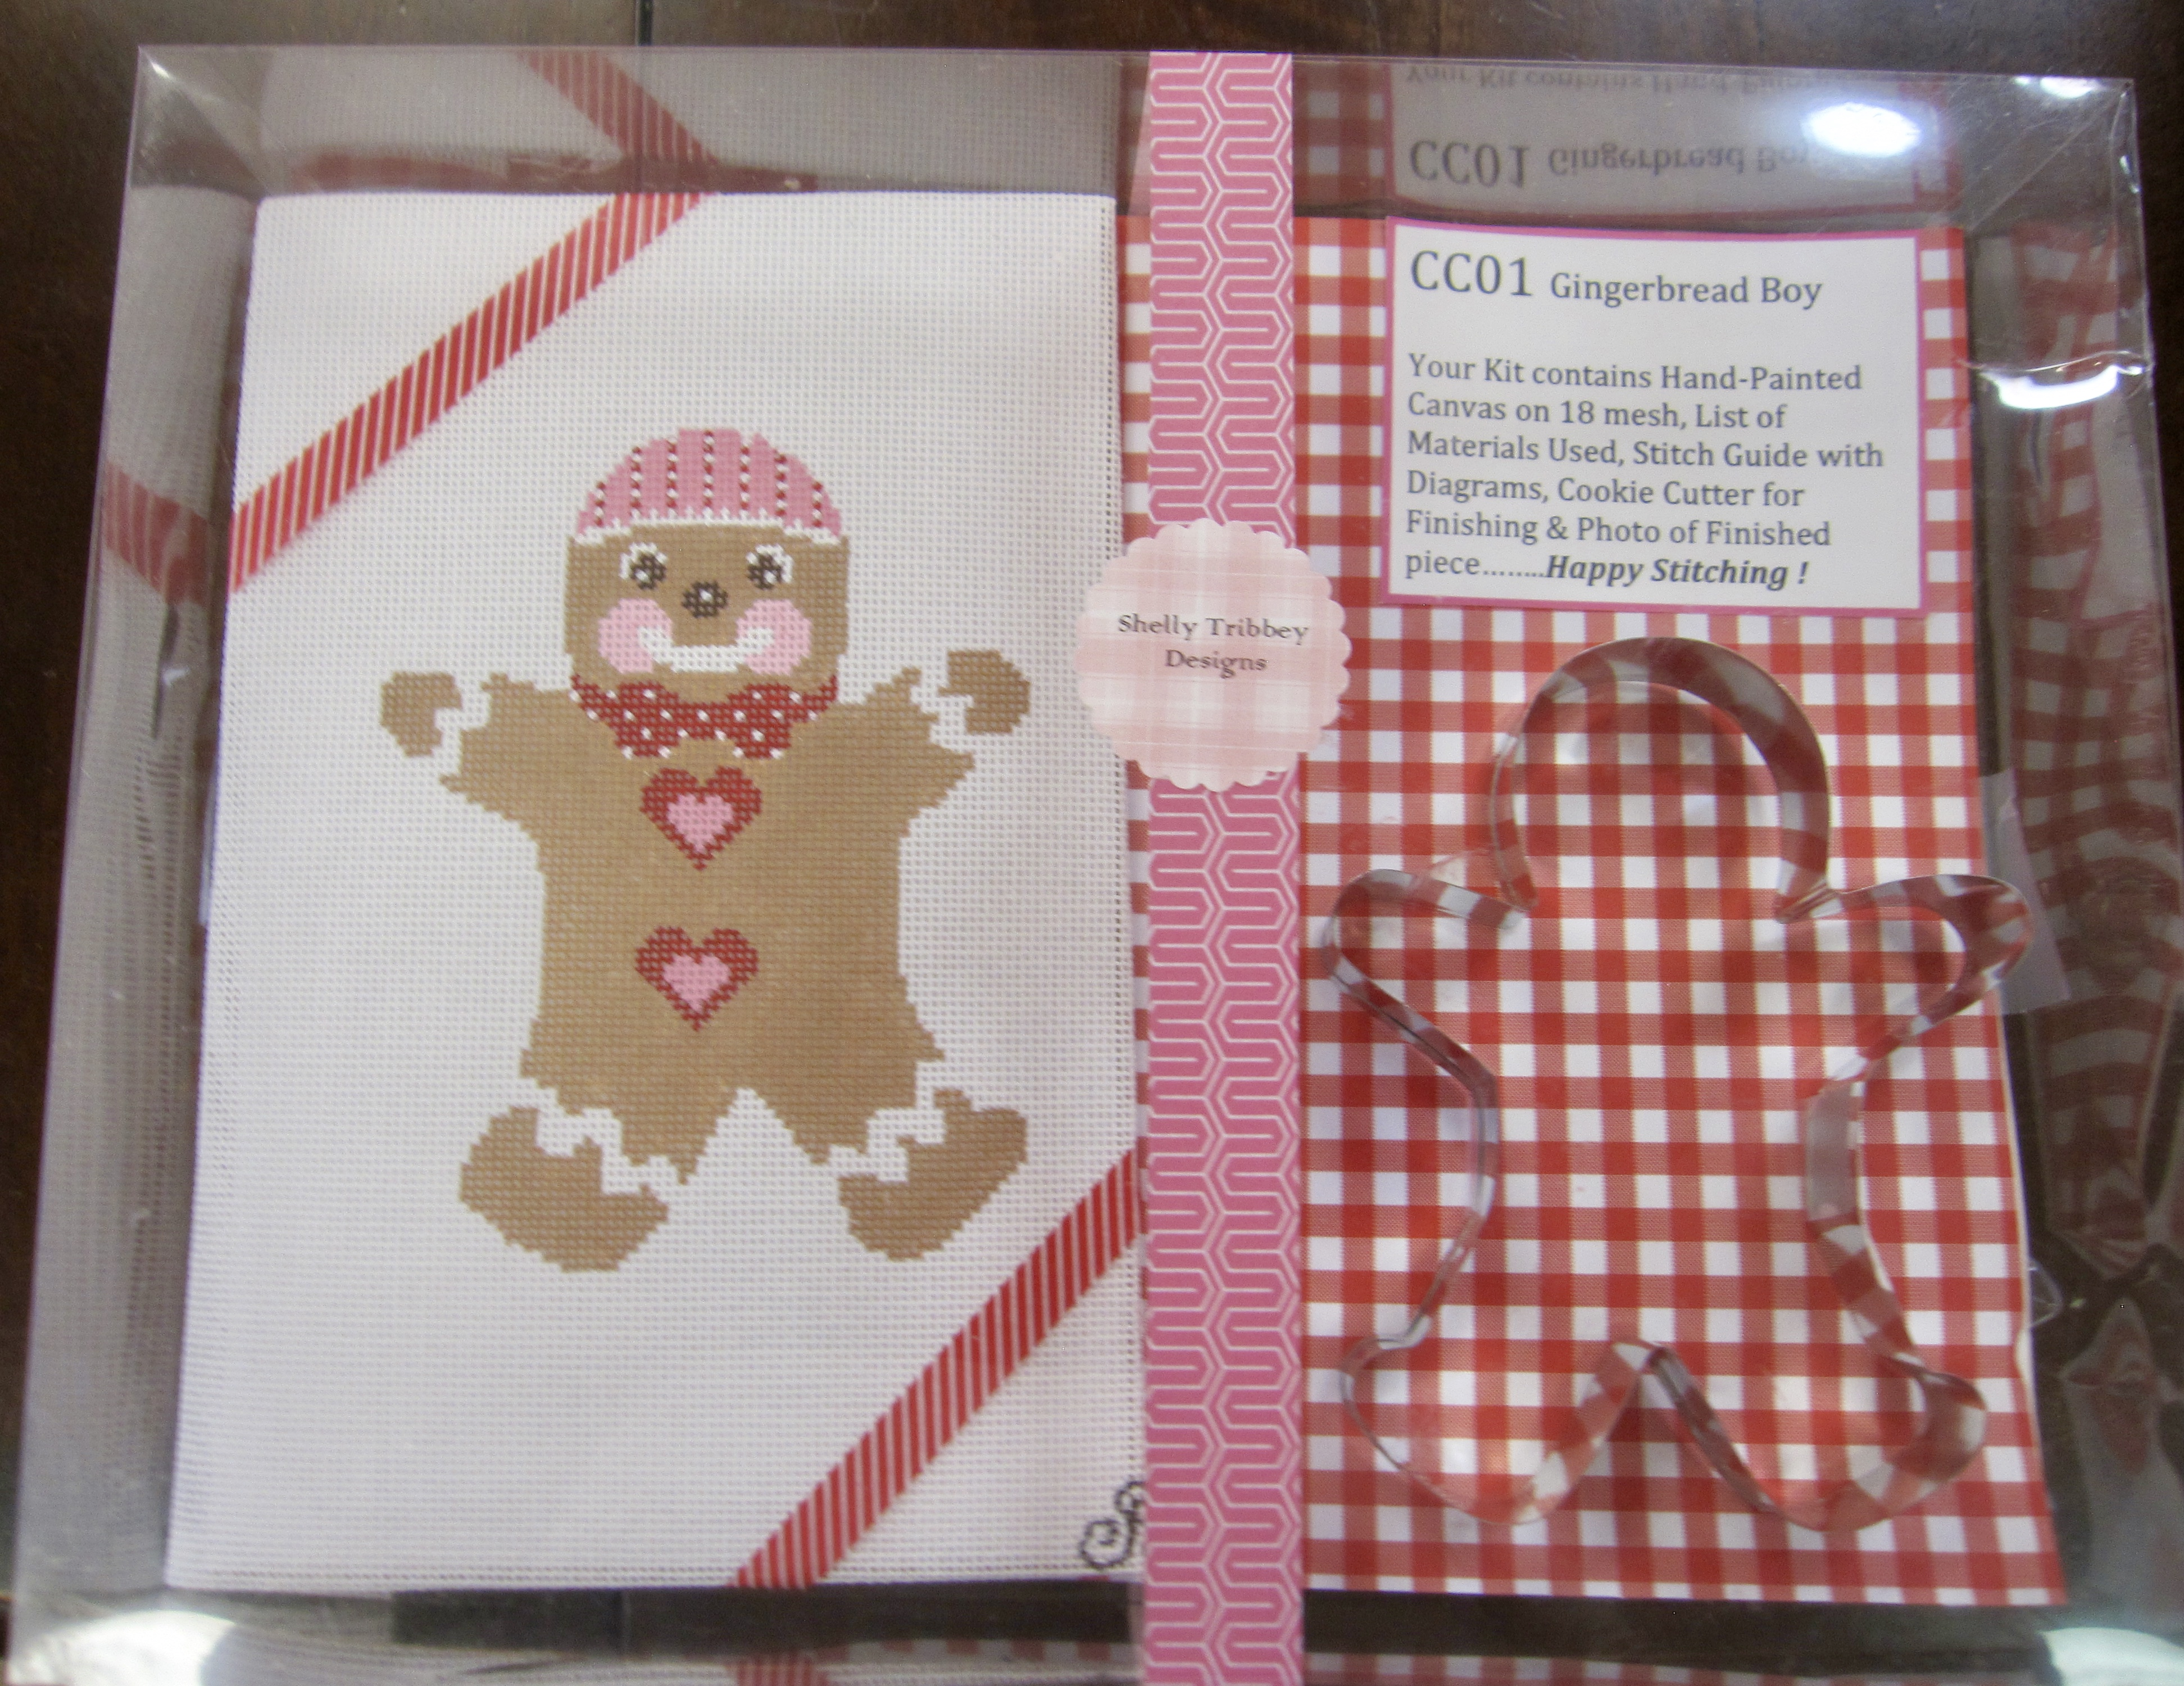 Gingerbread Boy self-finishing kit